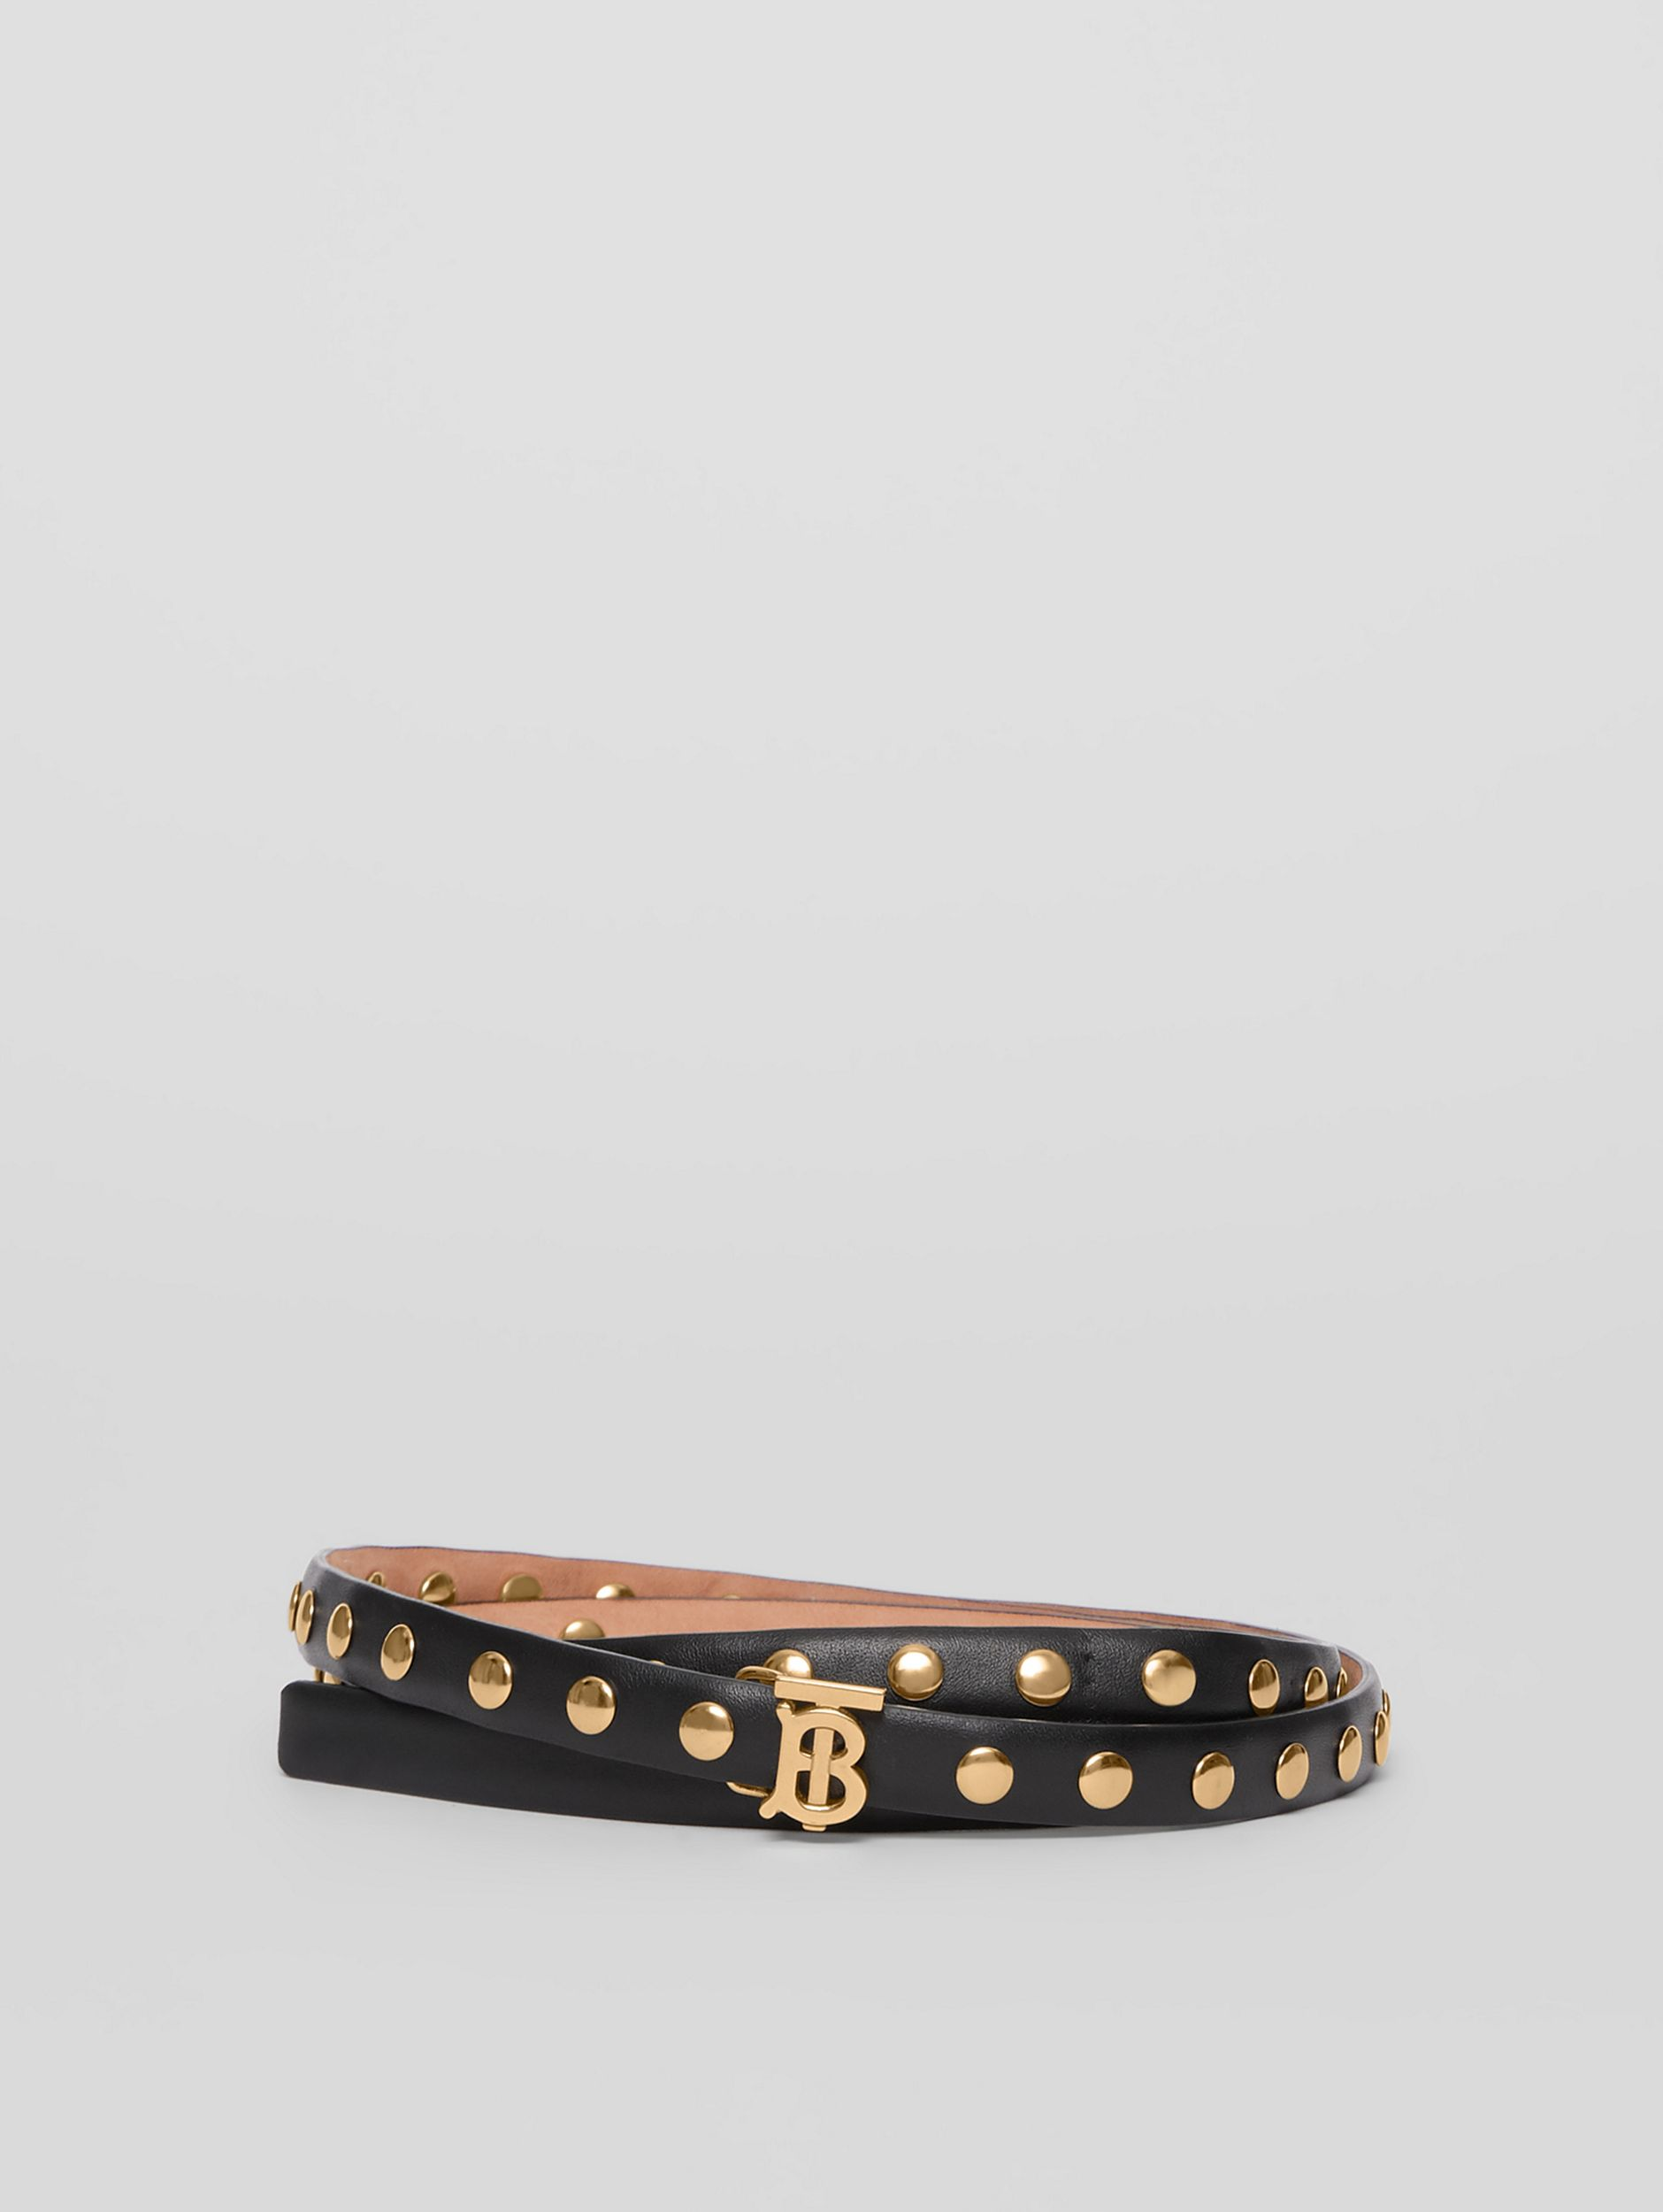 Monogram Motif Studded Leather Belt in Black/light Gold - Women | Burberry - 1